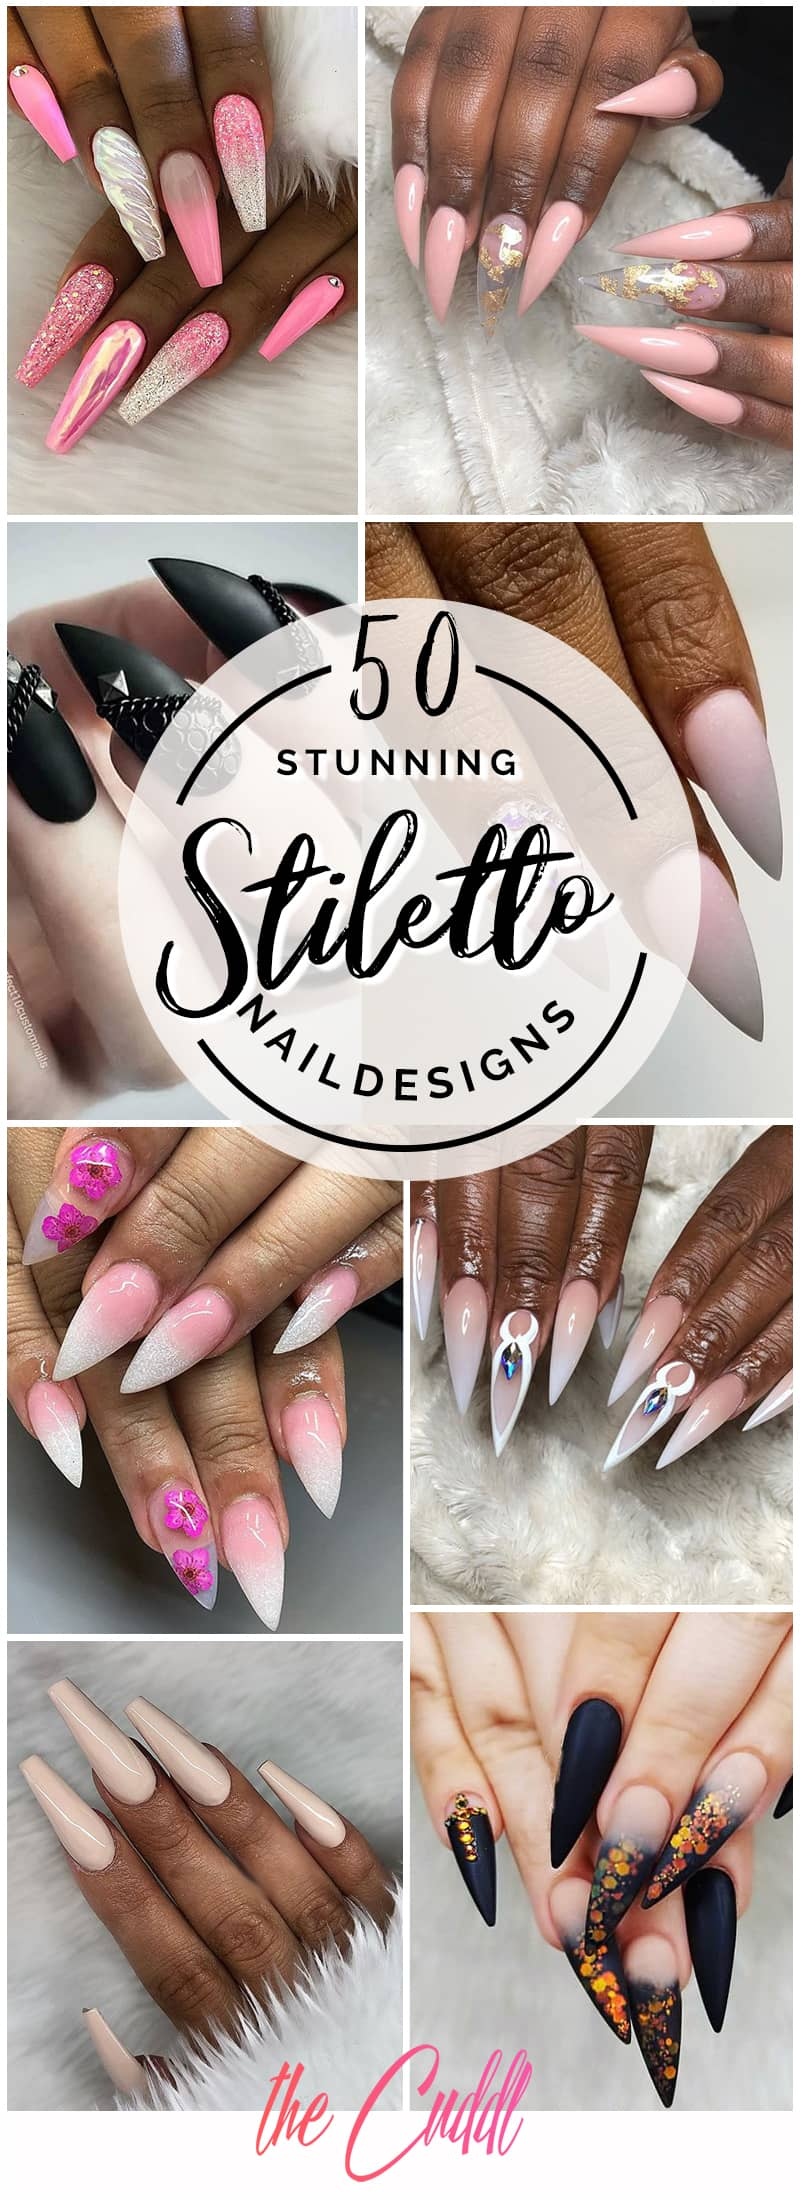 50 Stunning Stiletto Nail Ideas that Will Rock Your World